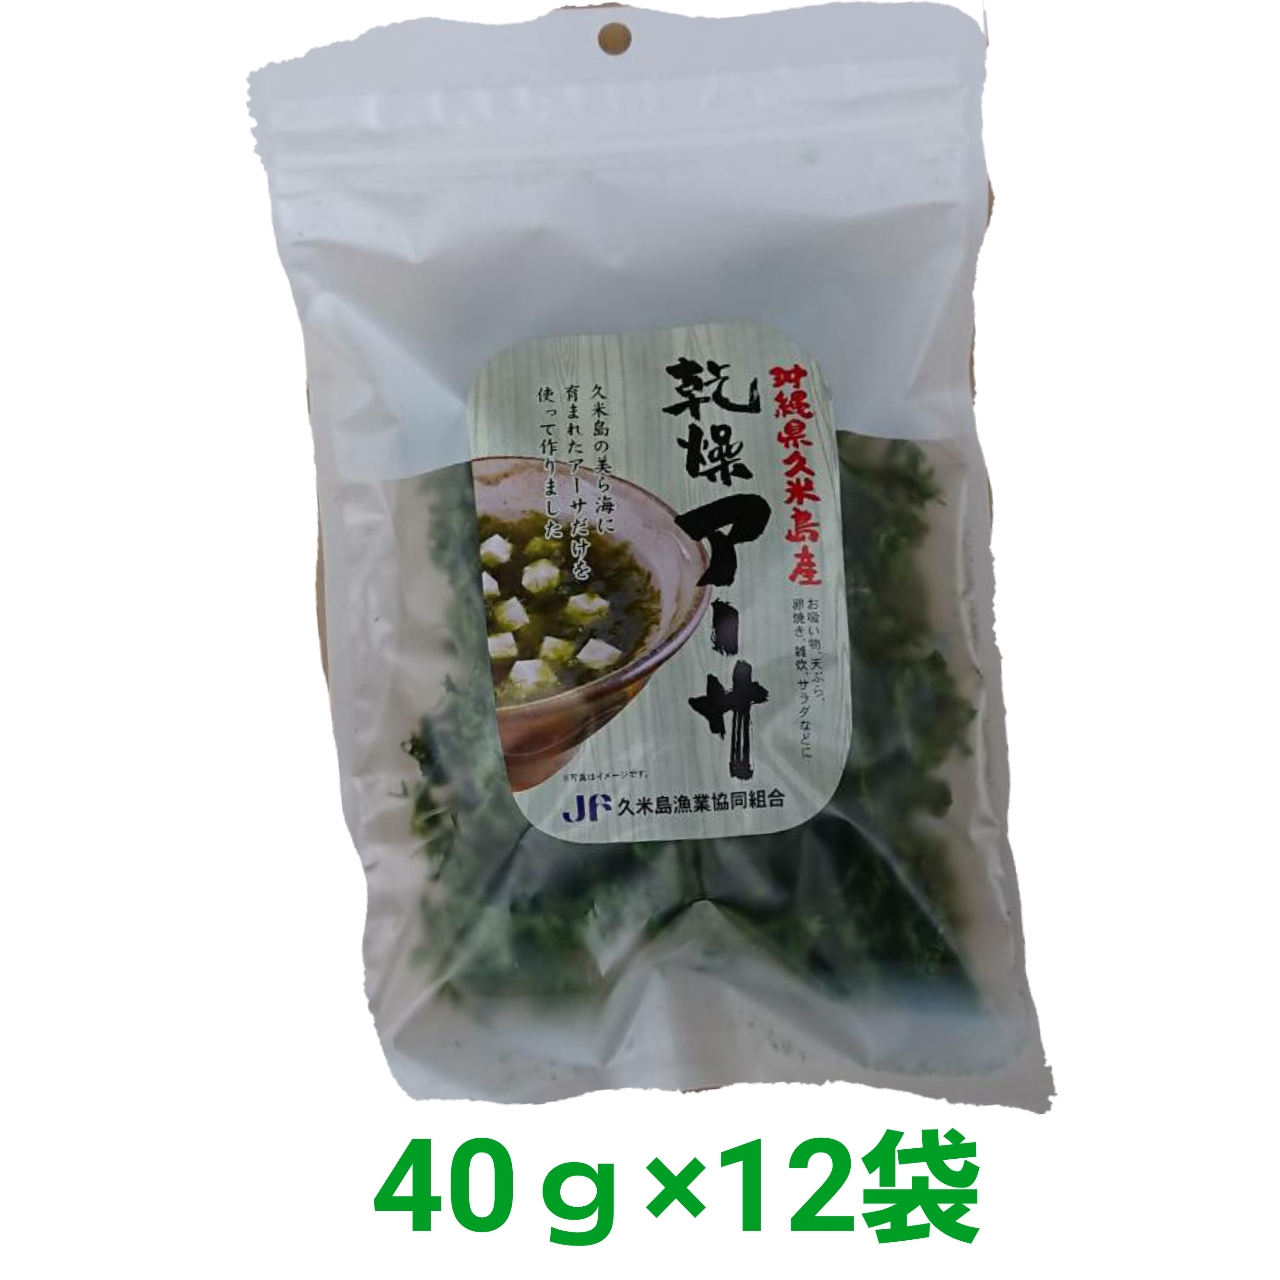 item_kansou_arsa_40g12pc